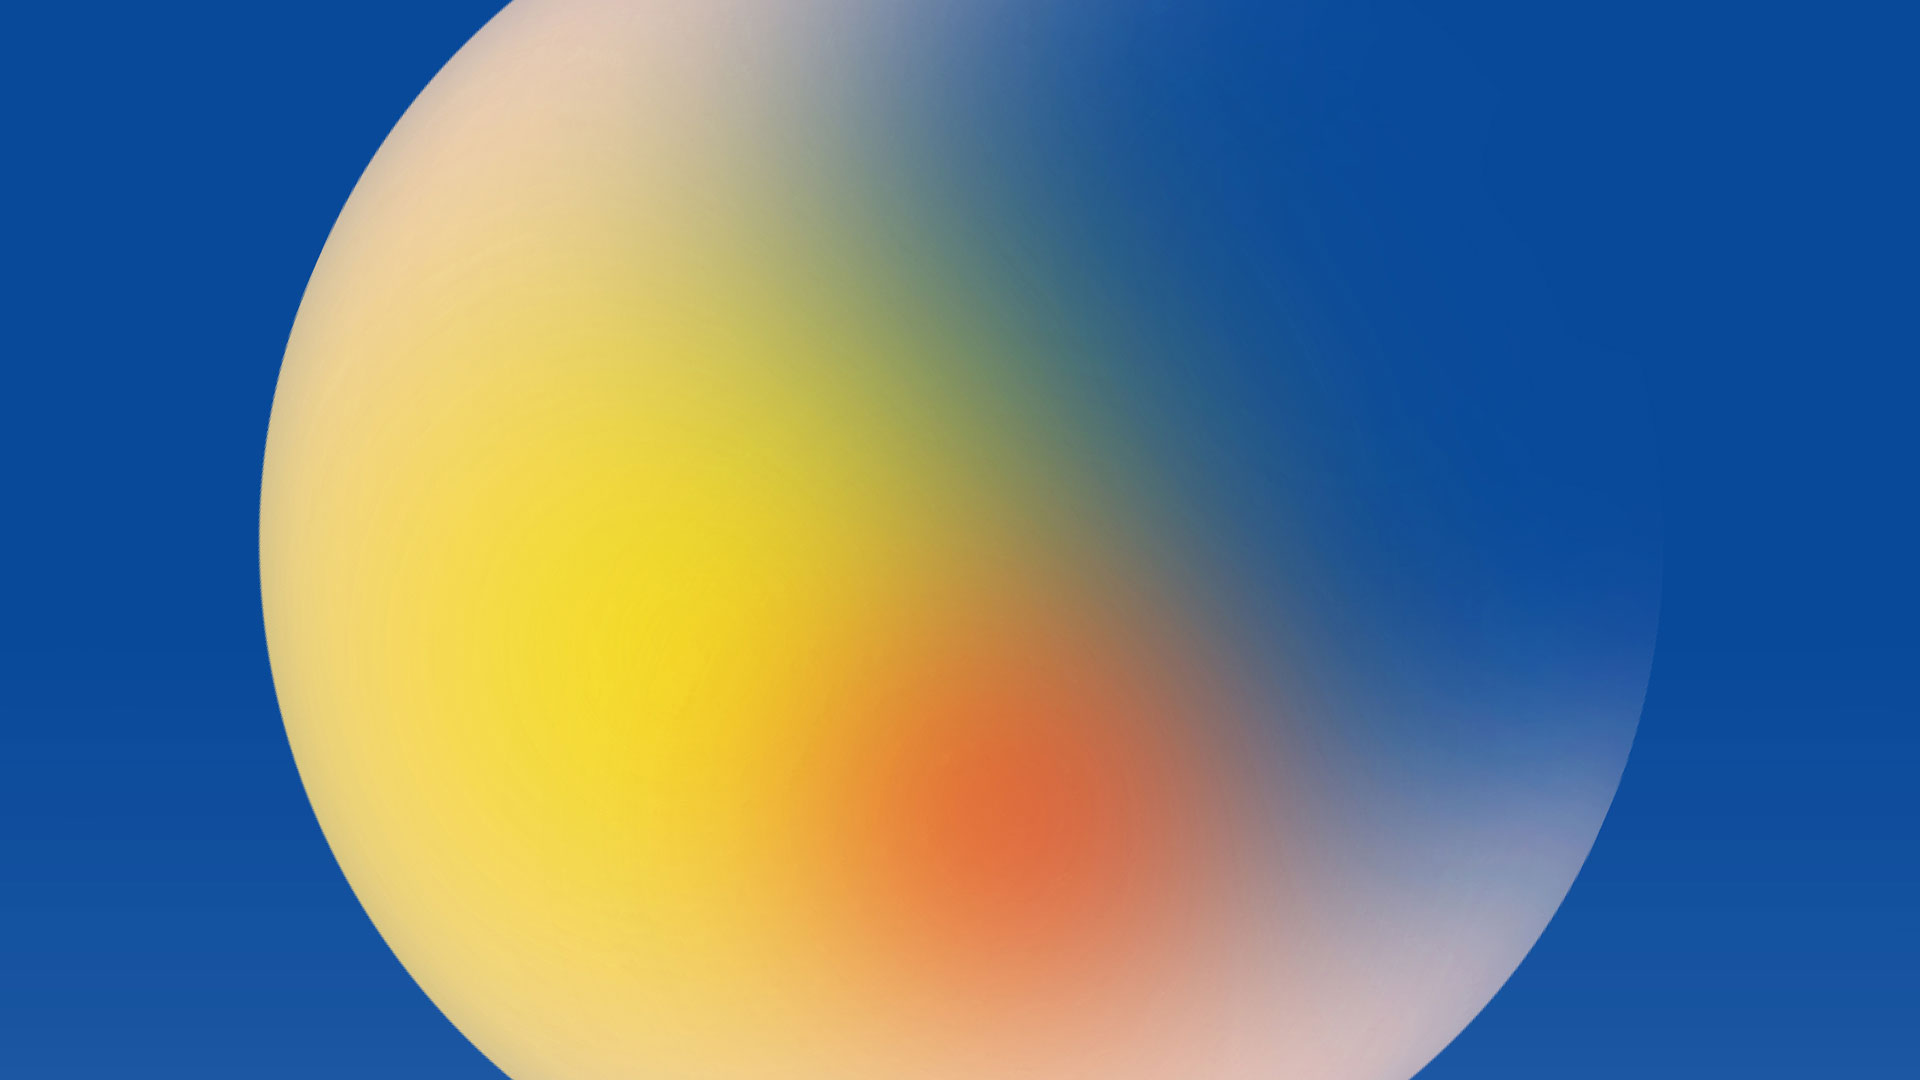 Image of a sphere with red blue and yellow gradient